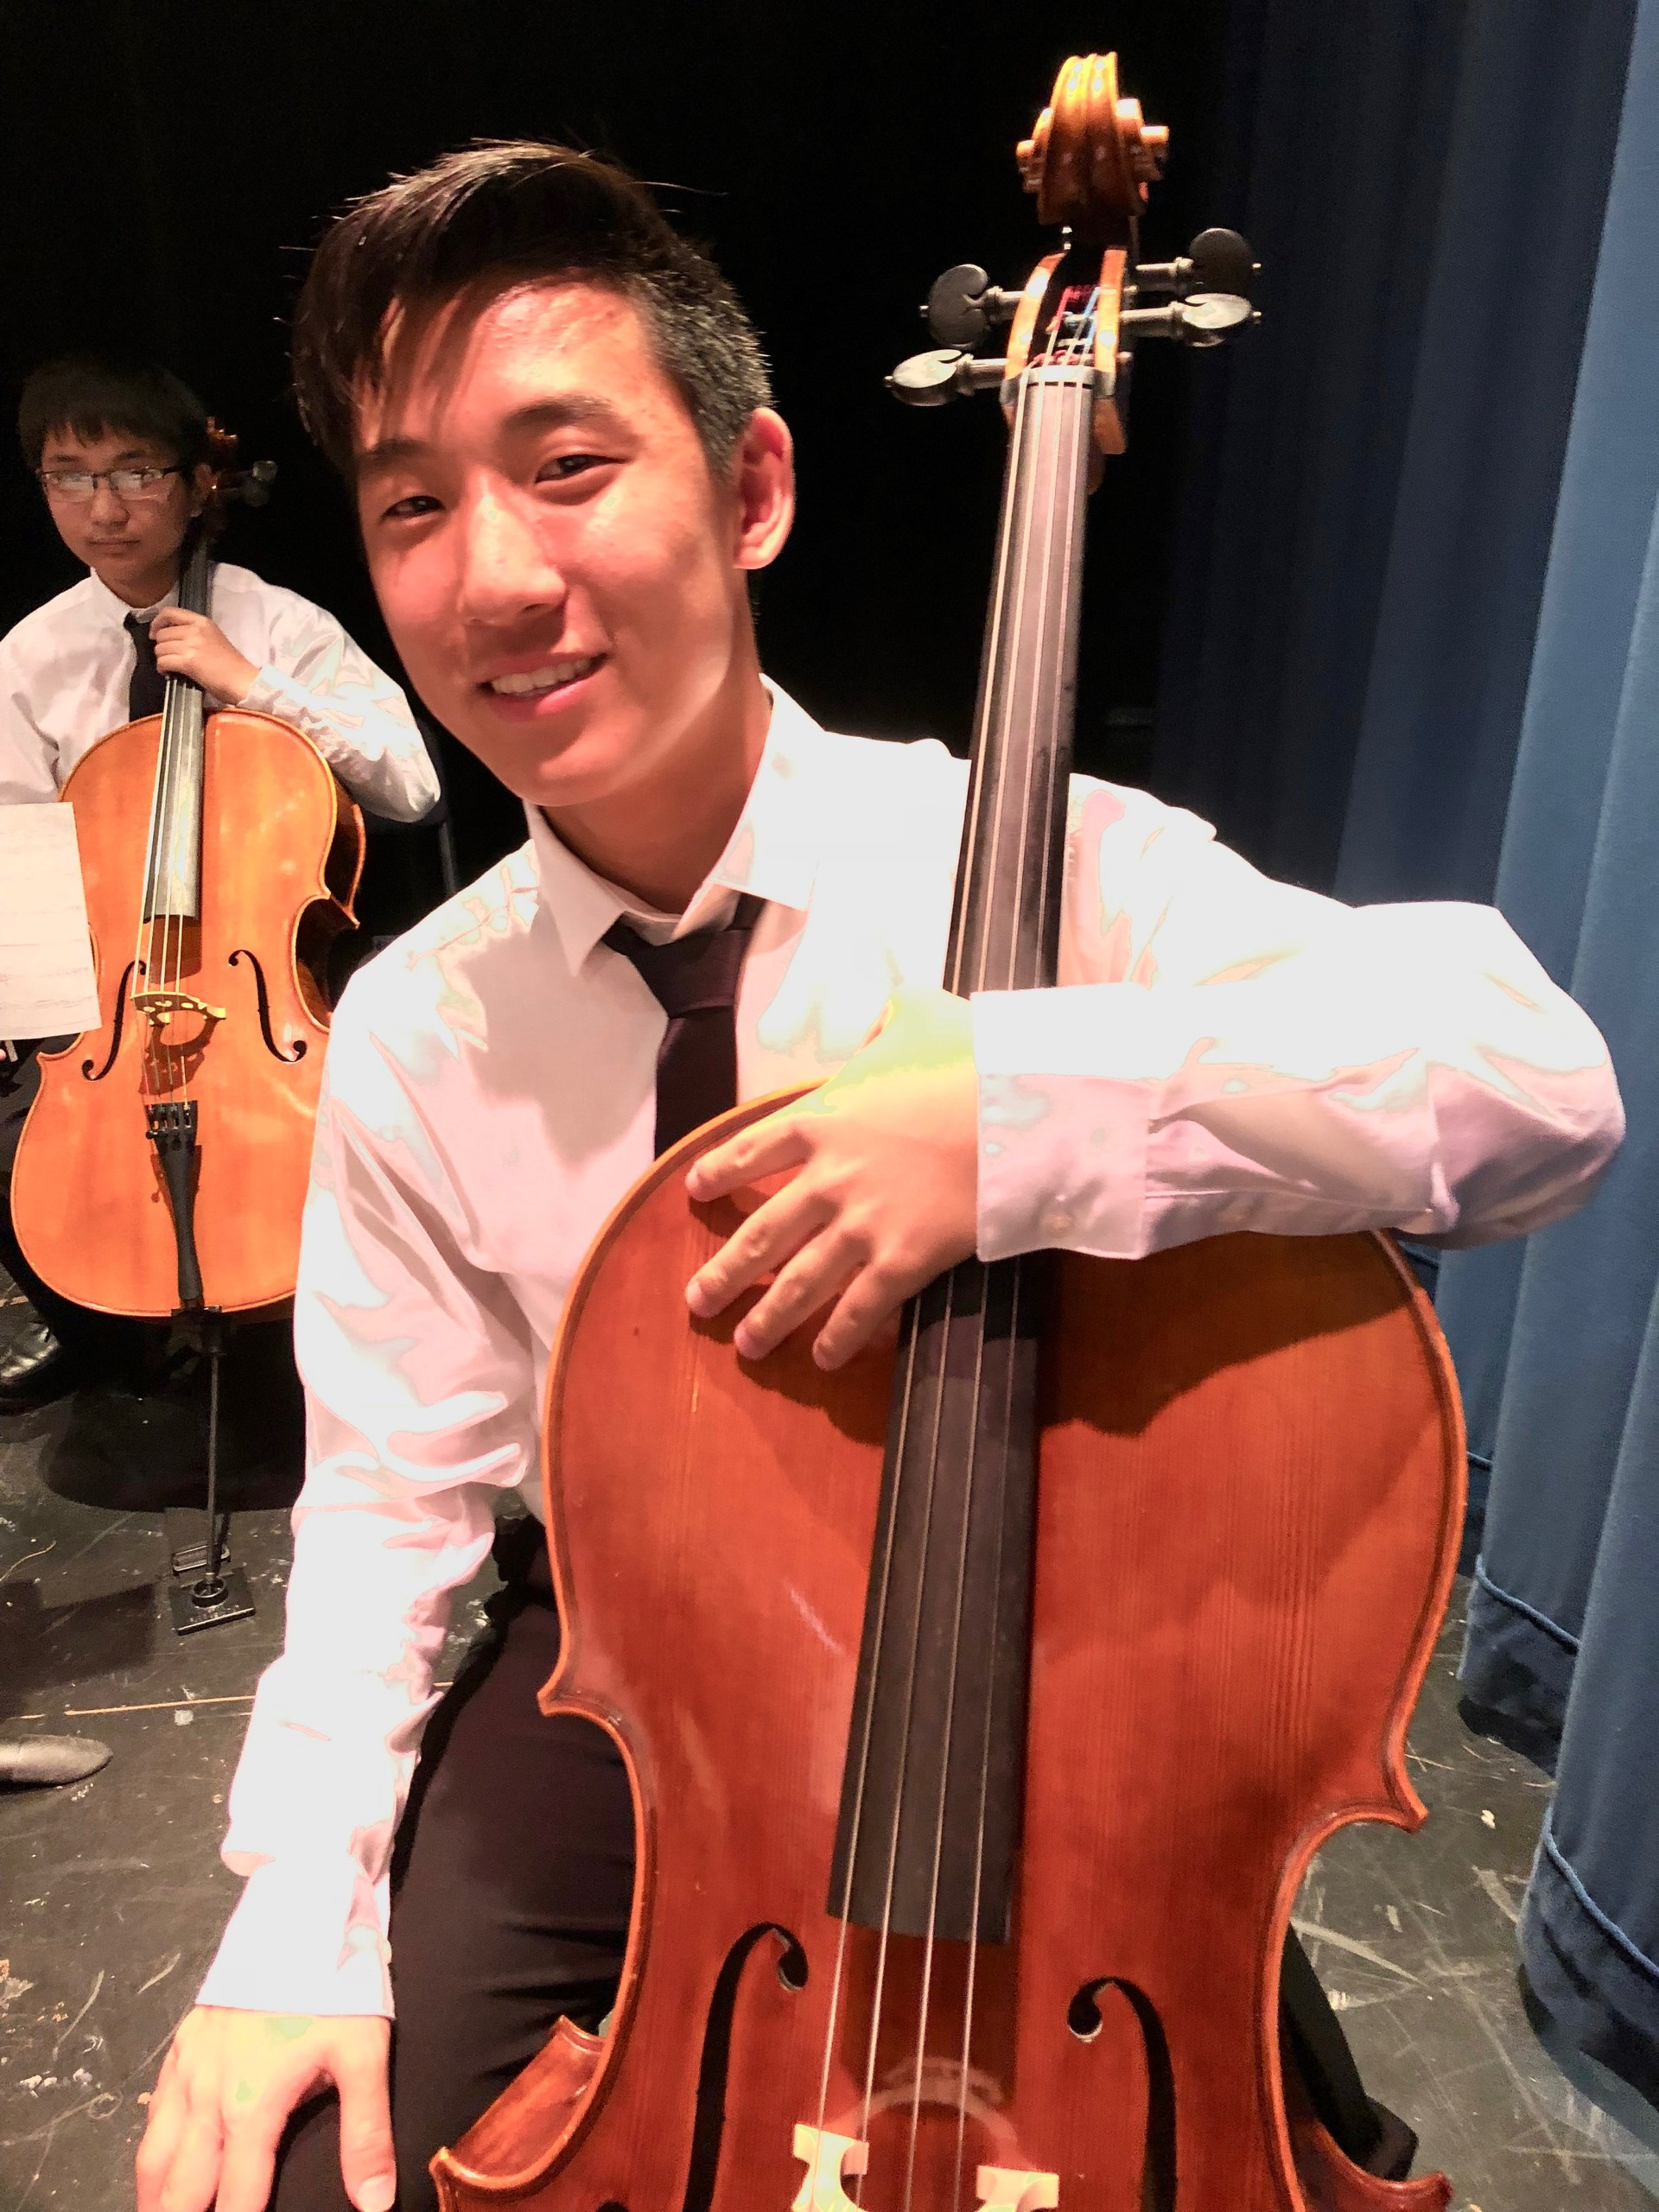 A boy posing with his cello.